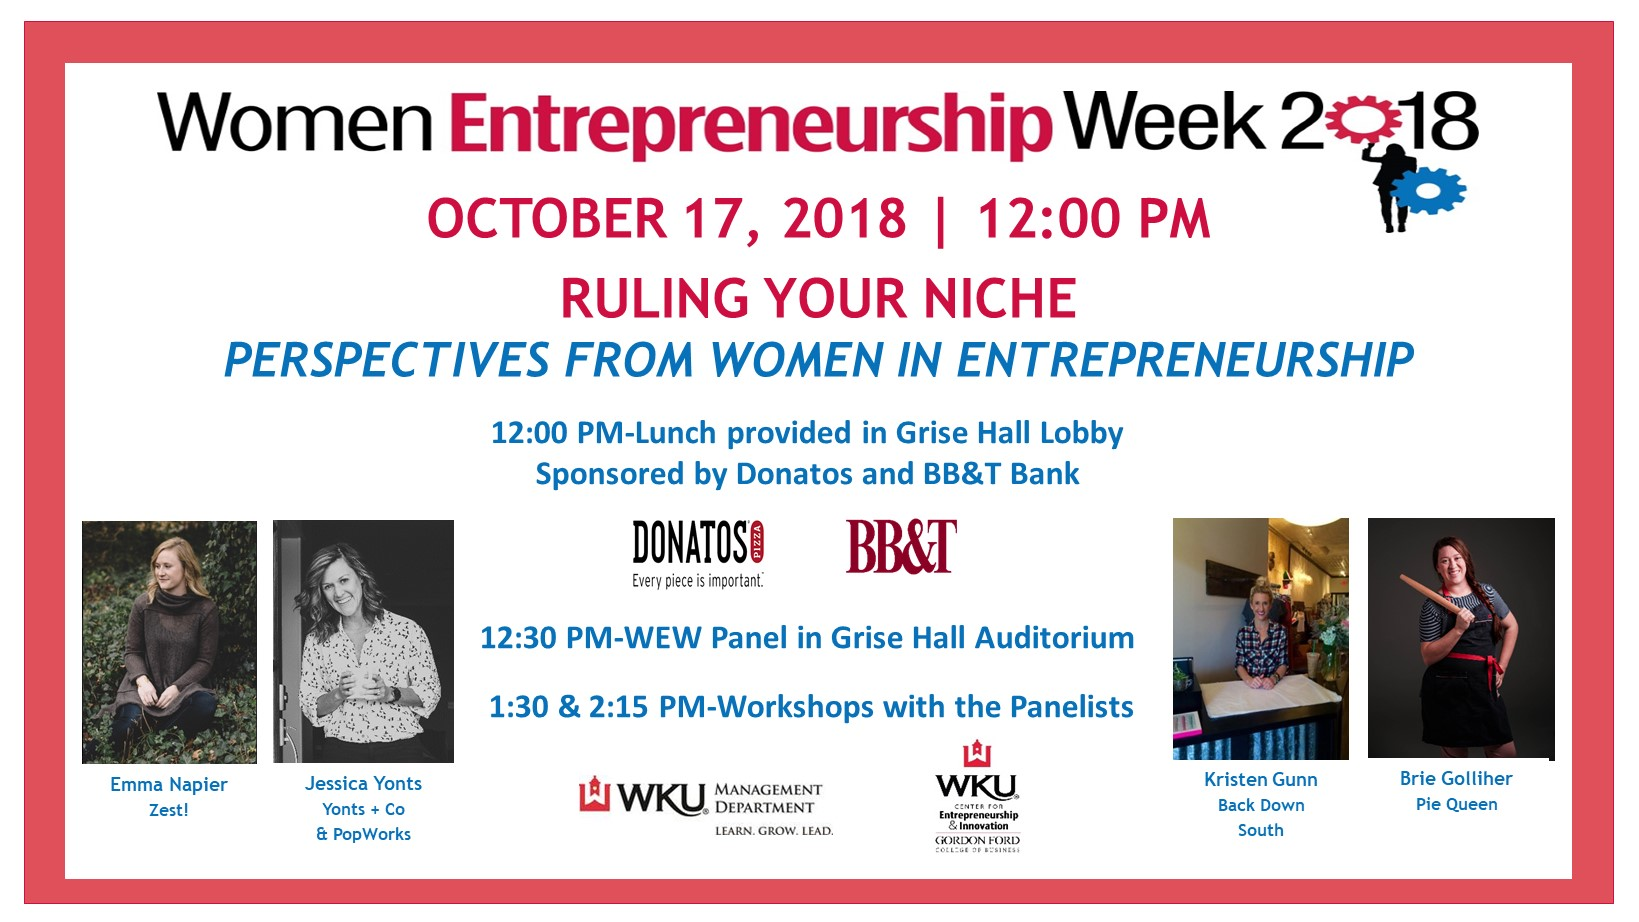 Women's Entrepreneurship Week 2018